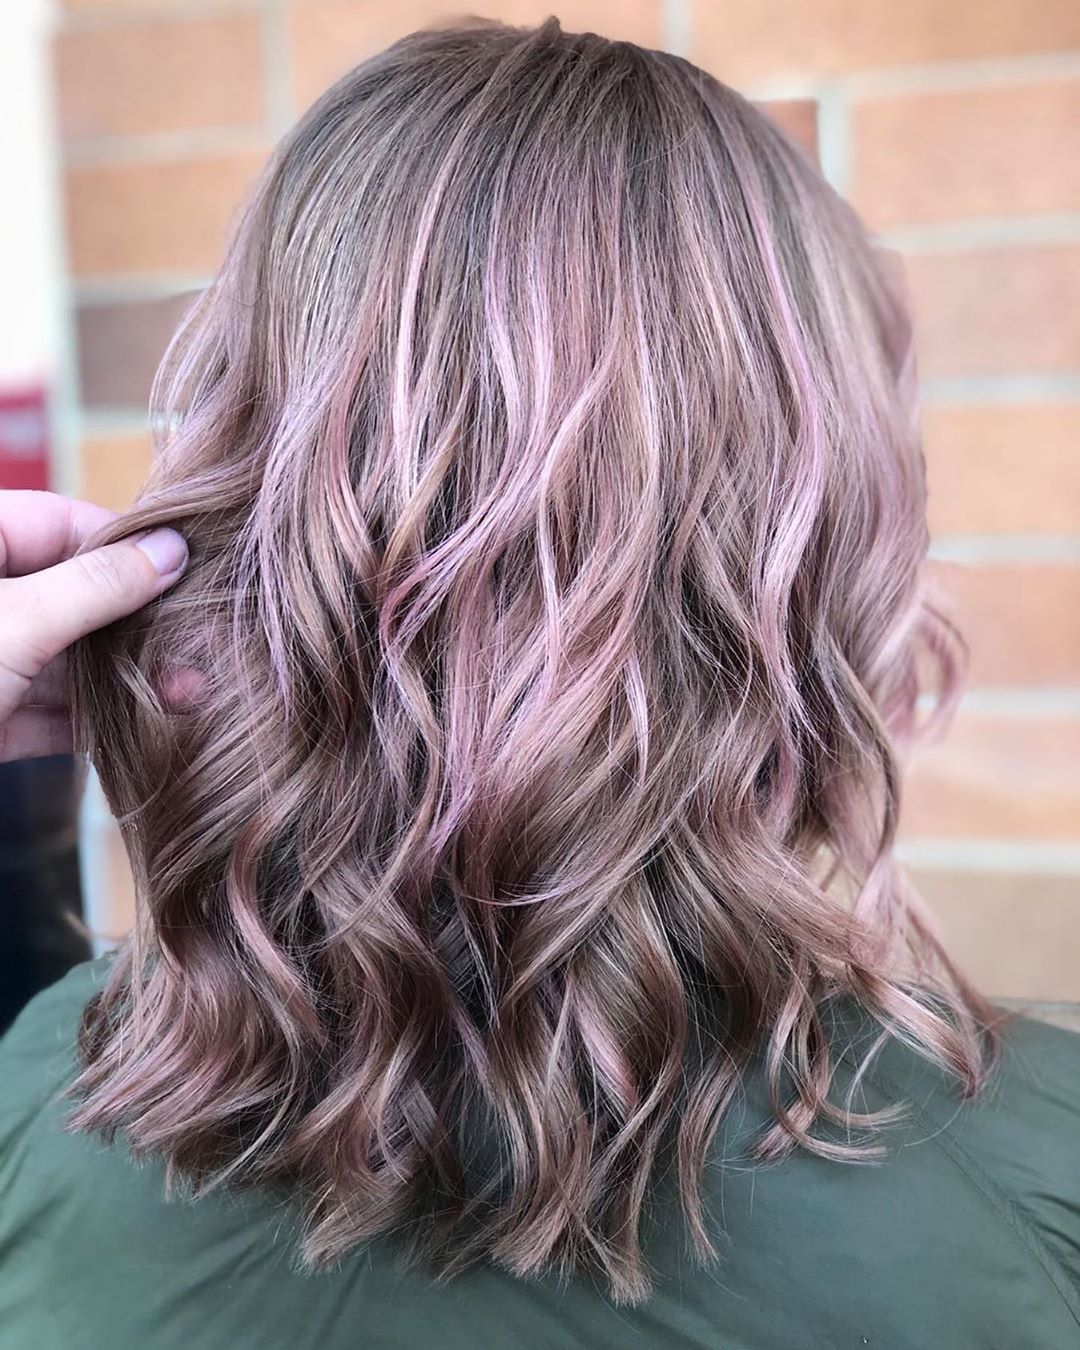 Stylish Shoulder Length Hairstyle and Color   Women Medium ...